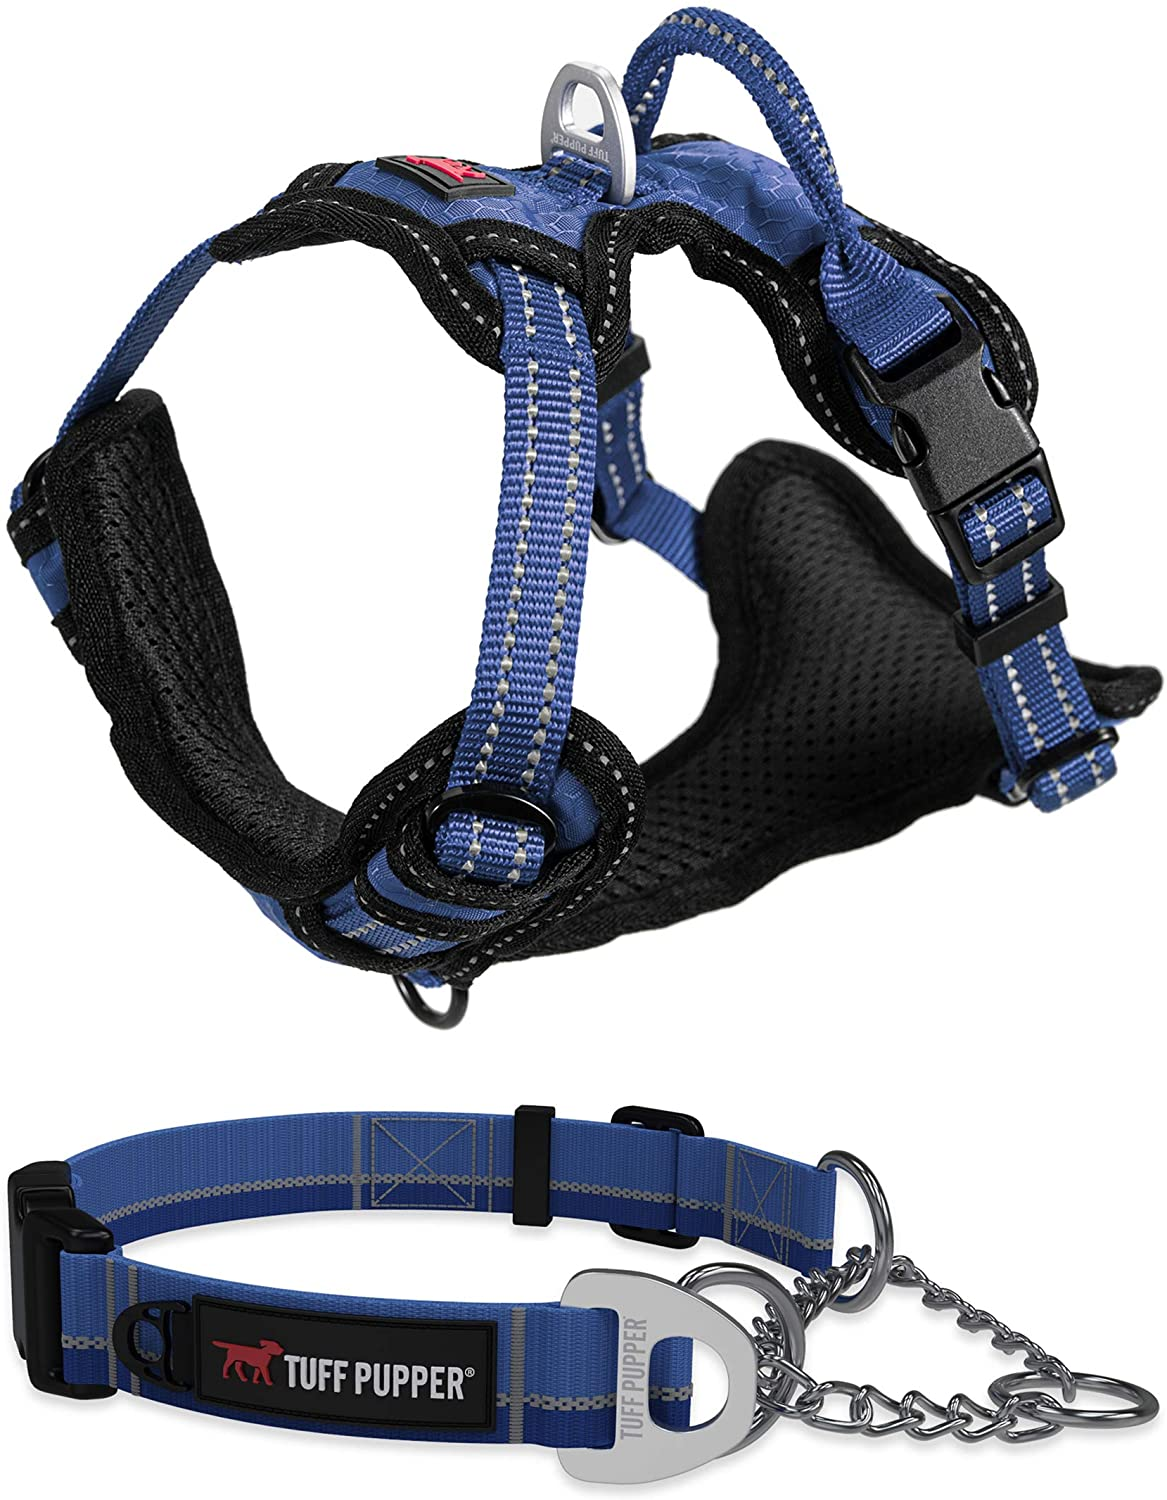 Medium (16 - 24) Reaction Martingale Collar for Dogs and Large Midnight Blue Metro - No Pull Dog Harness Bundle